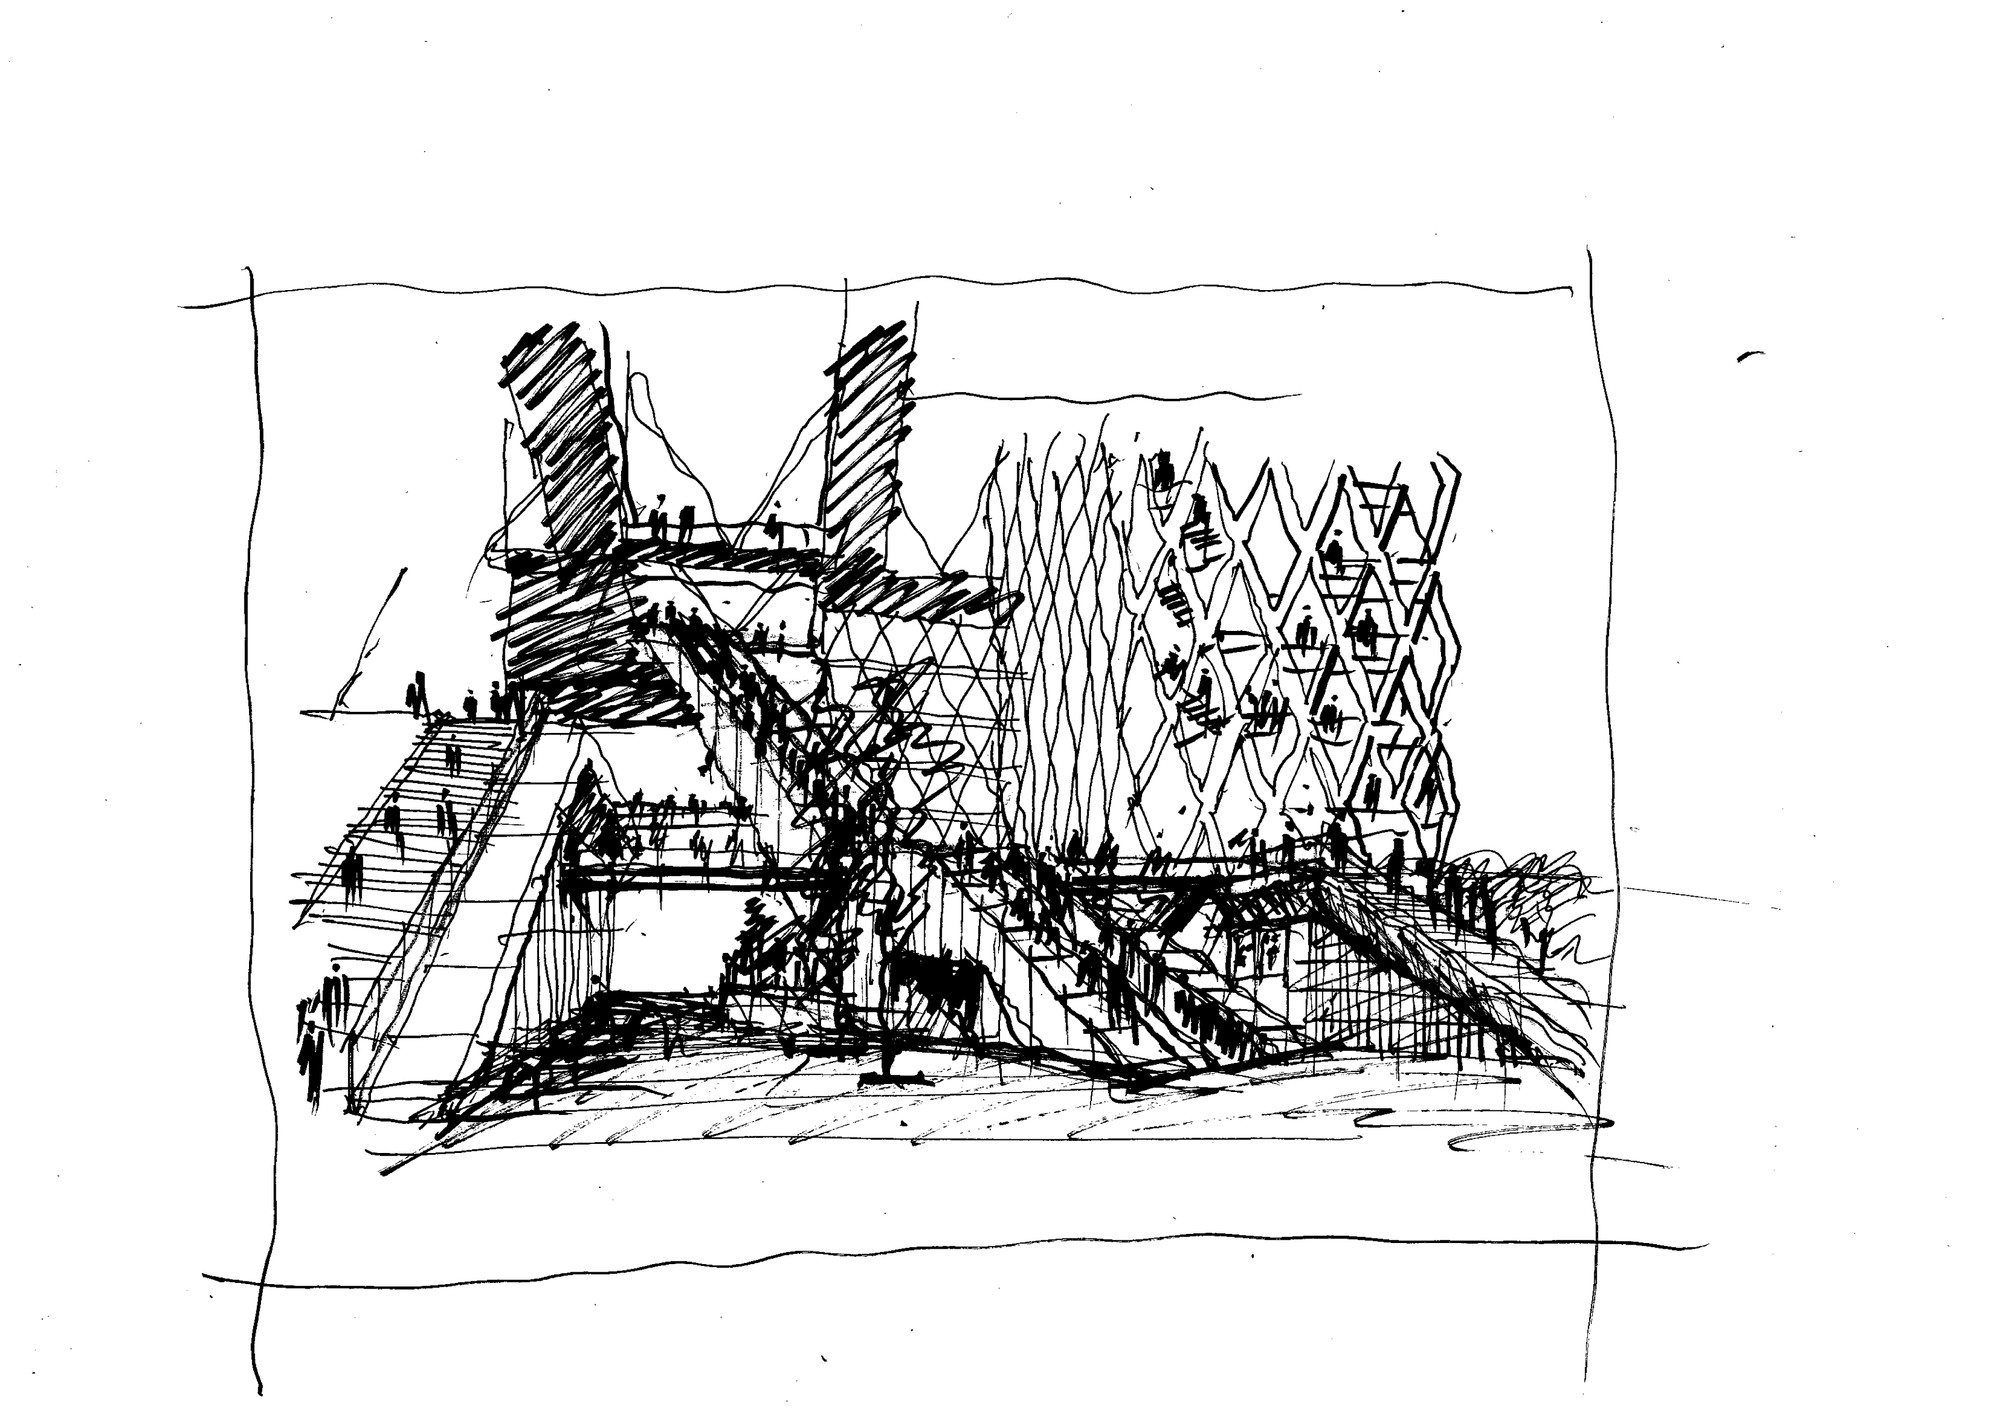 hight resolution of hong kong institute of design sketch